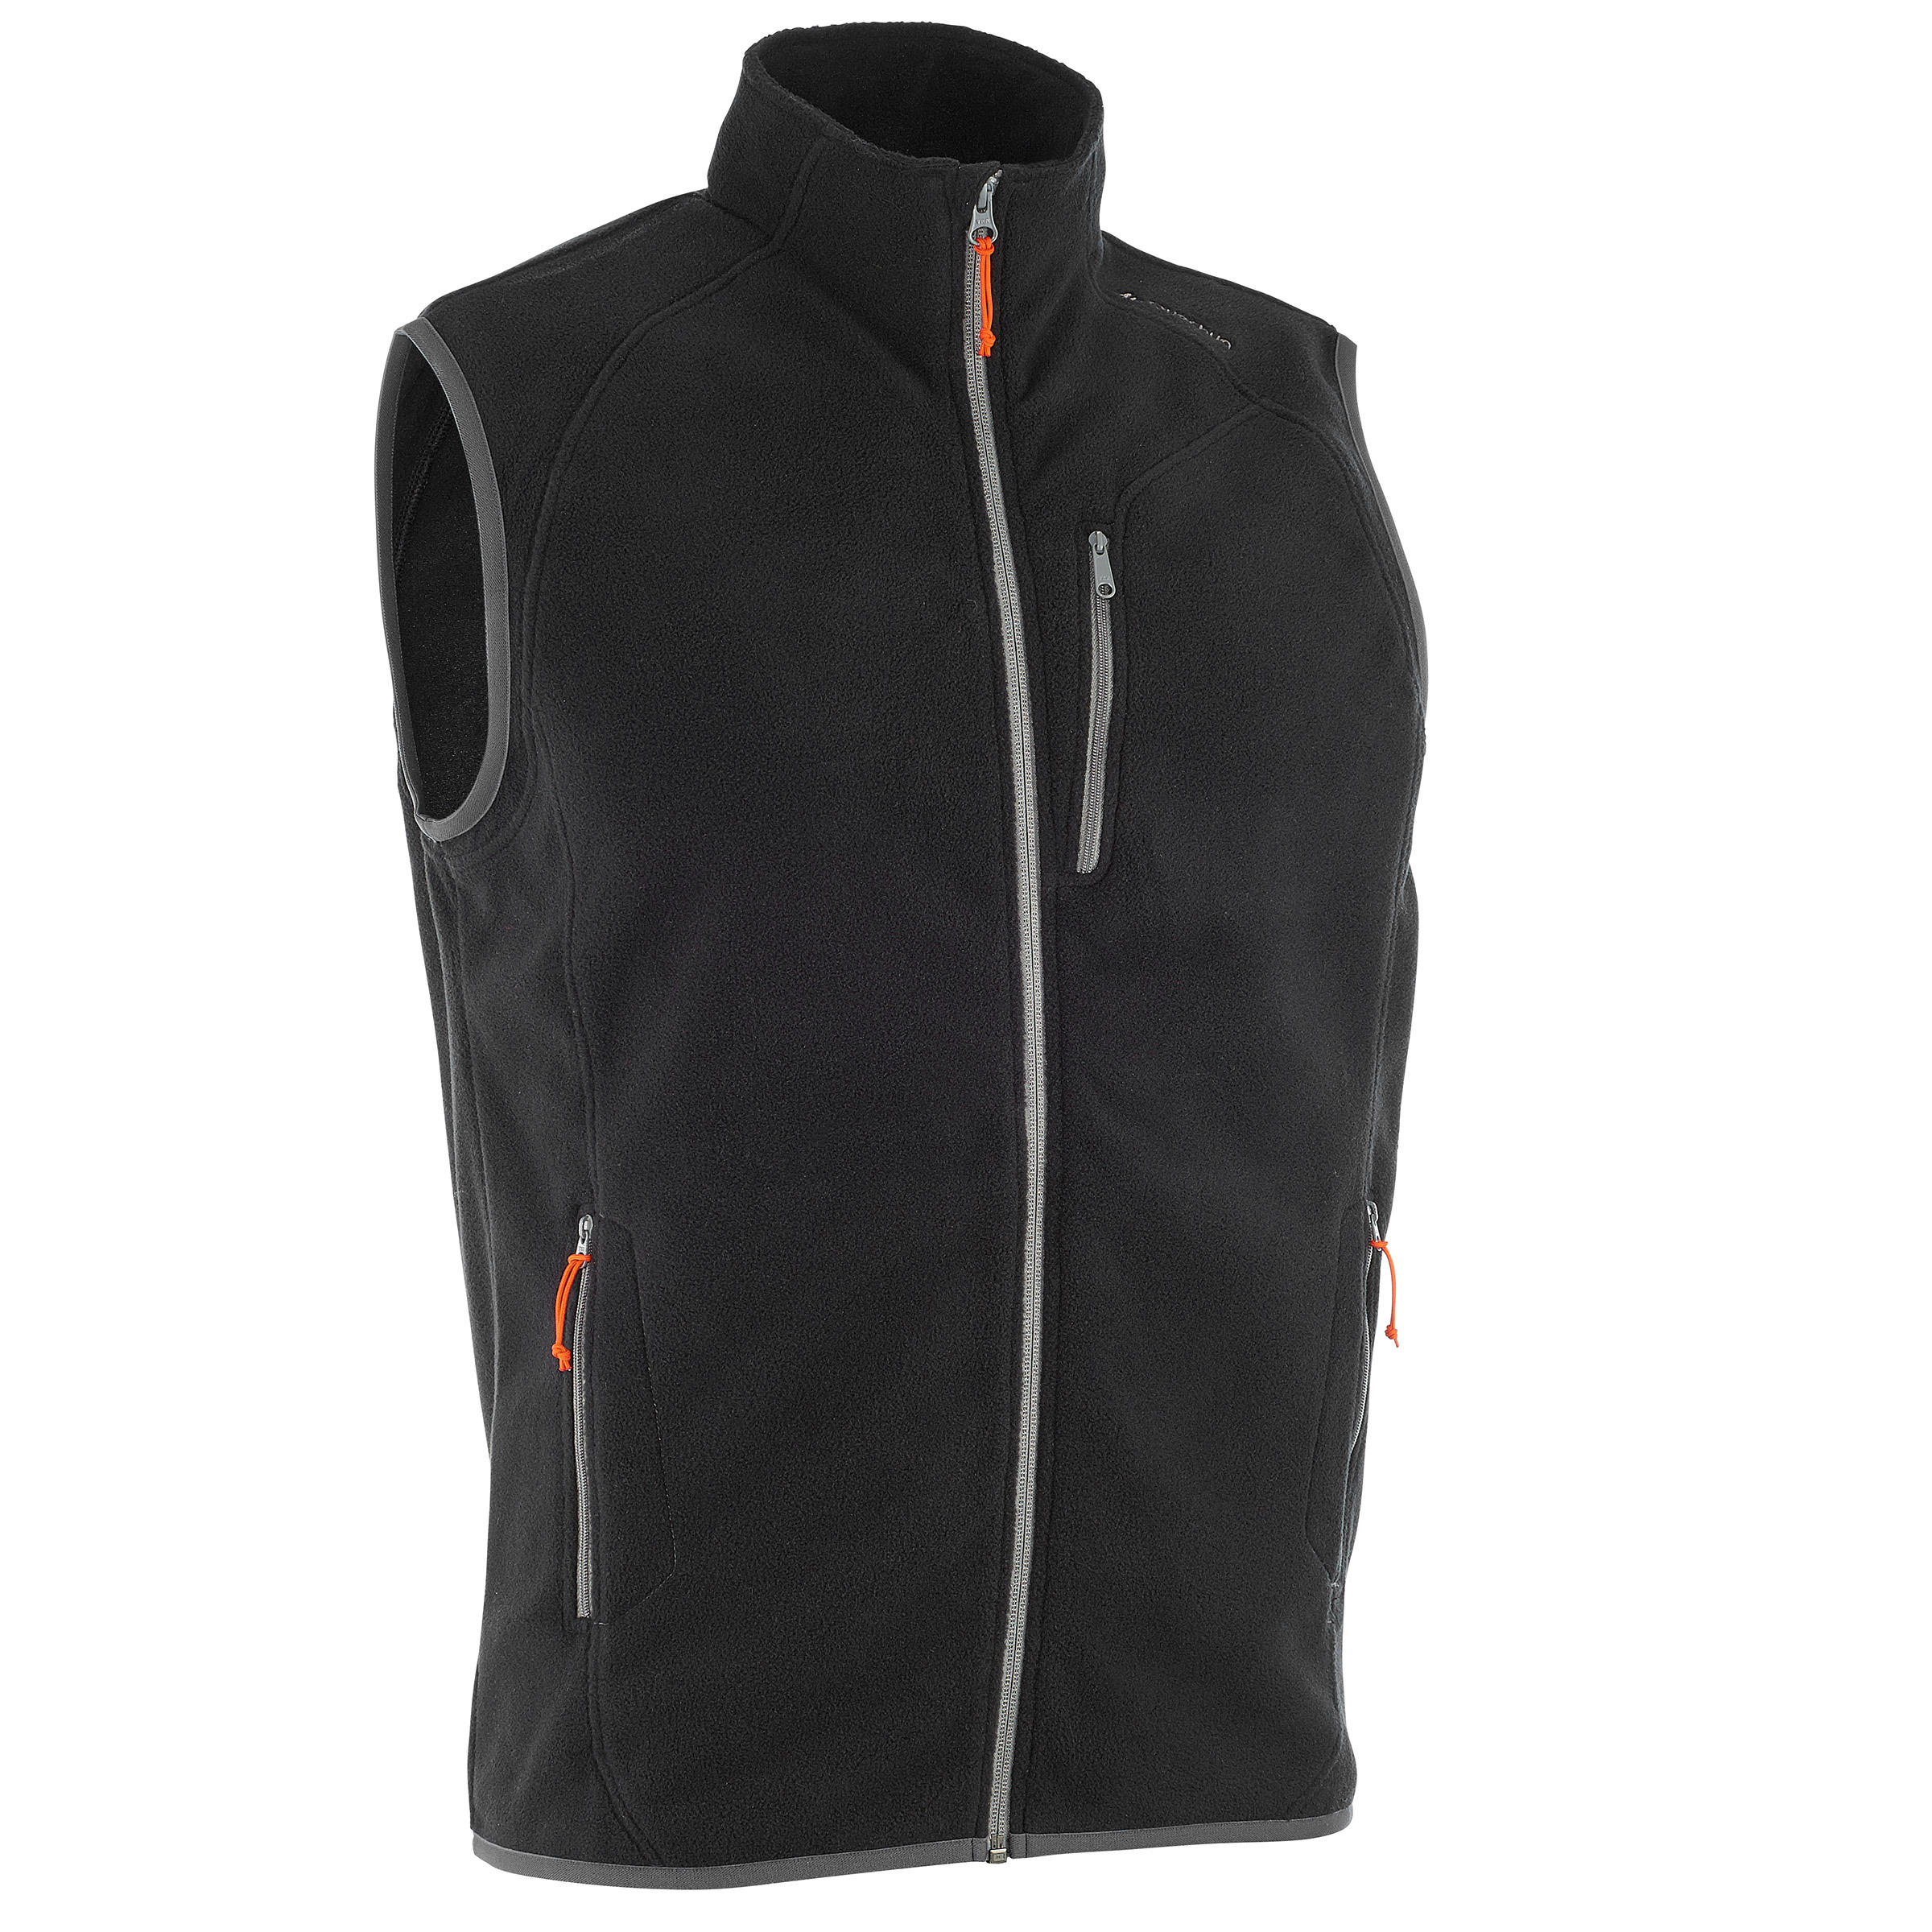 MH120 Men's Mountain Hiking Fleece Vest - Black